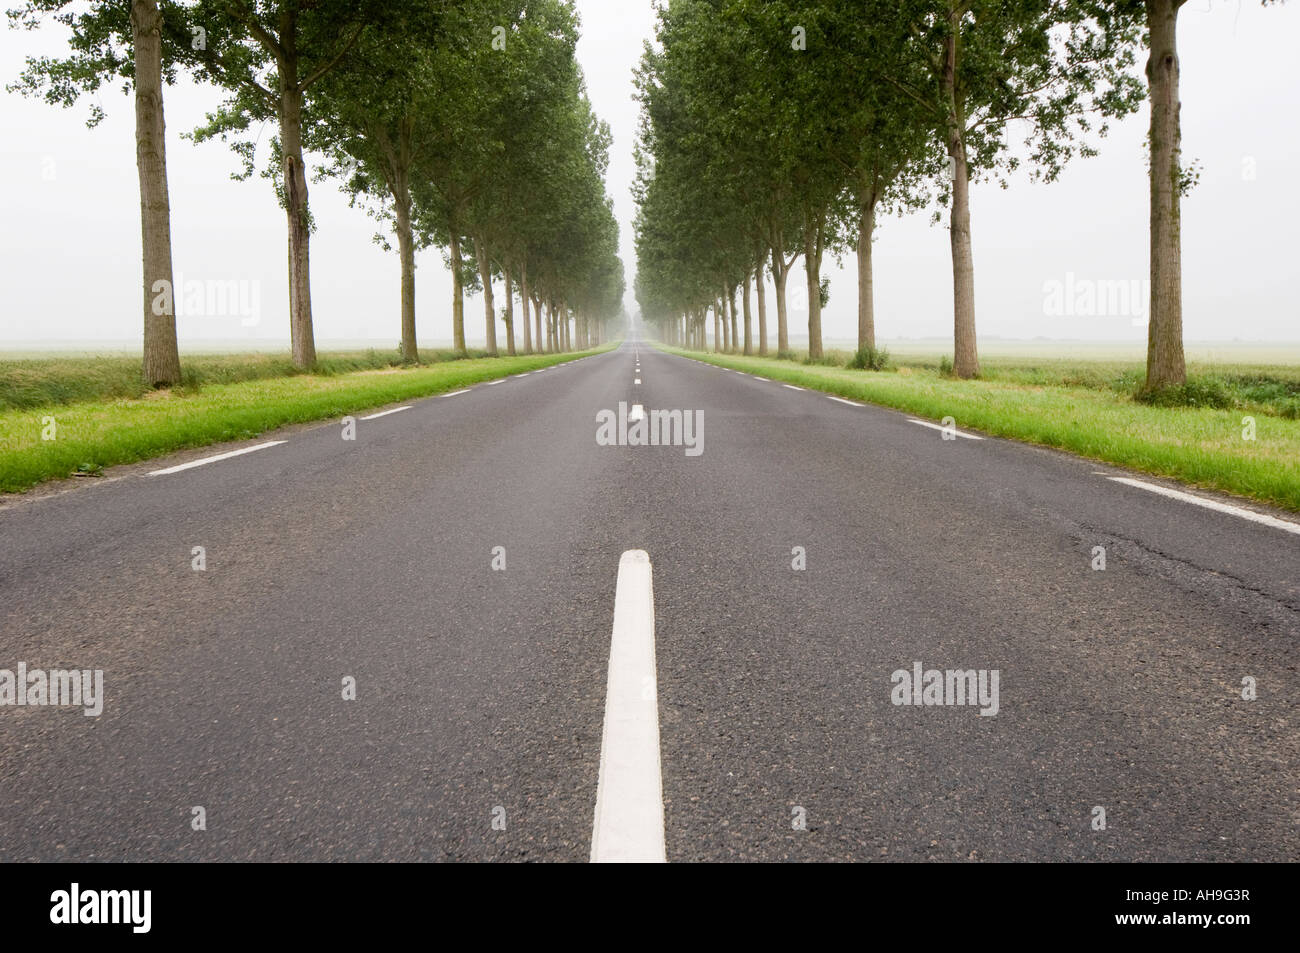 Long Straight Road with trees Stock Photo, Royalty Free Image ... for Straight Road With Trees  557yll